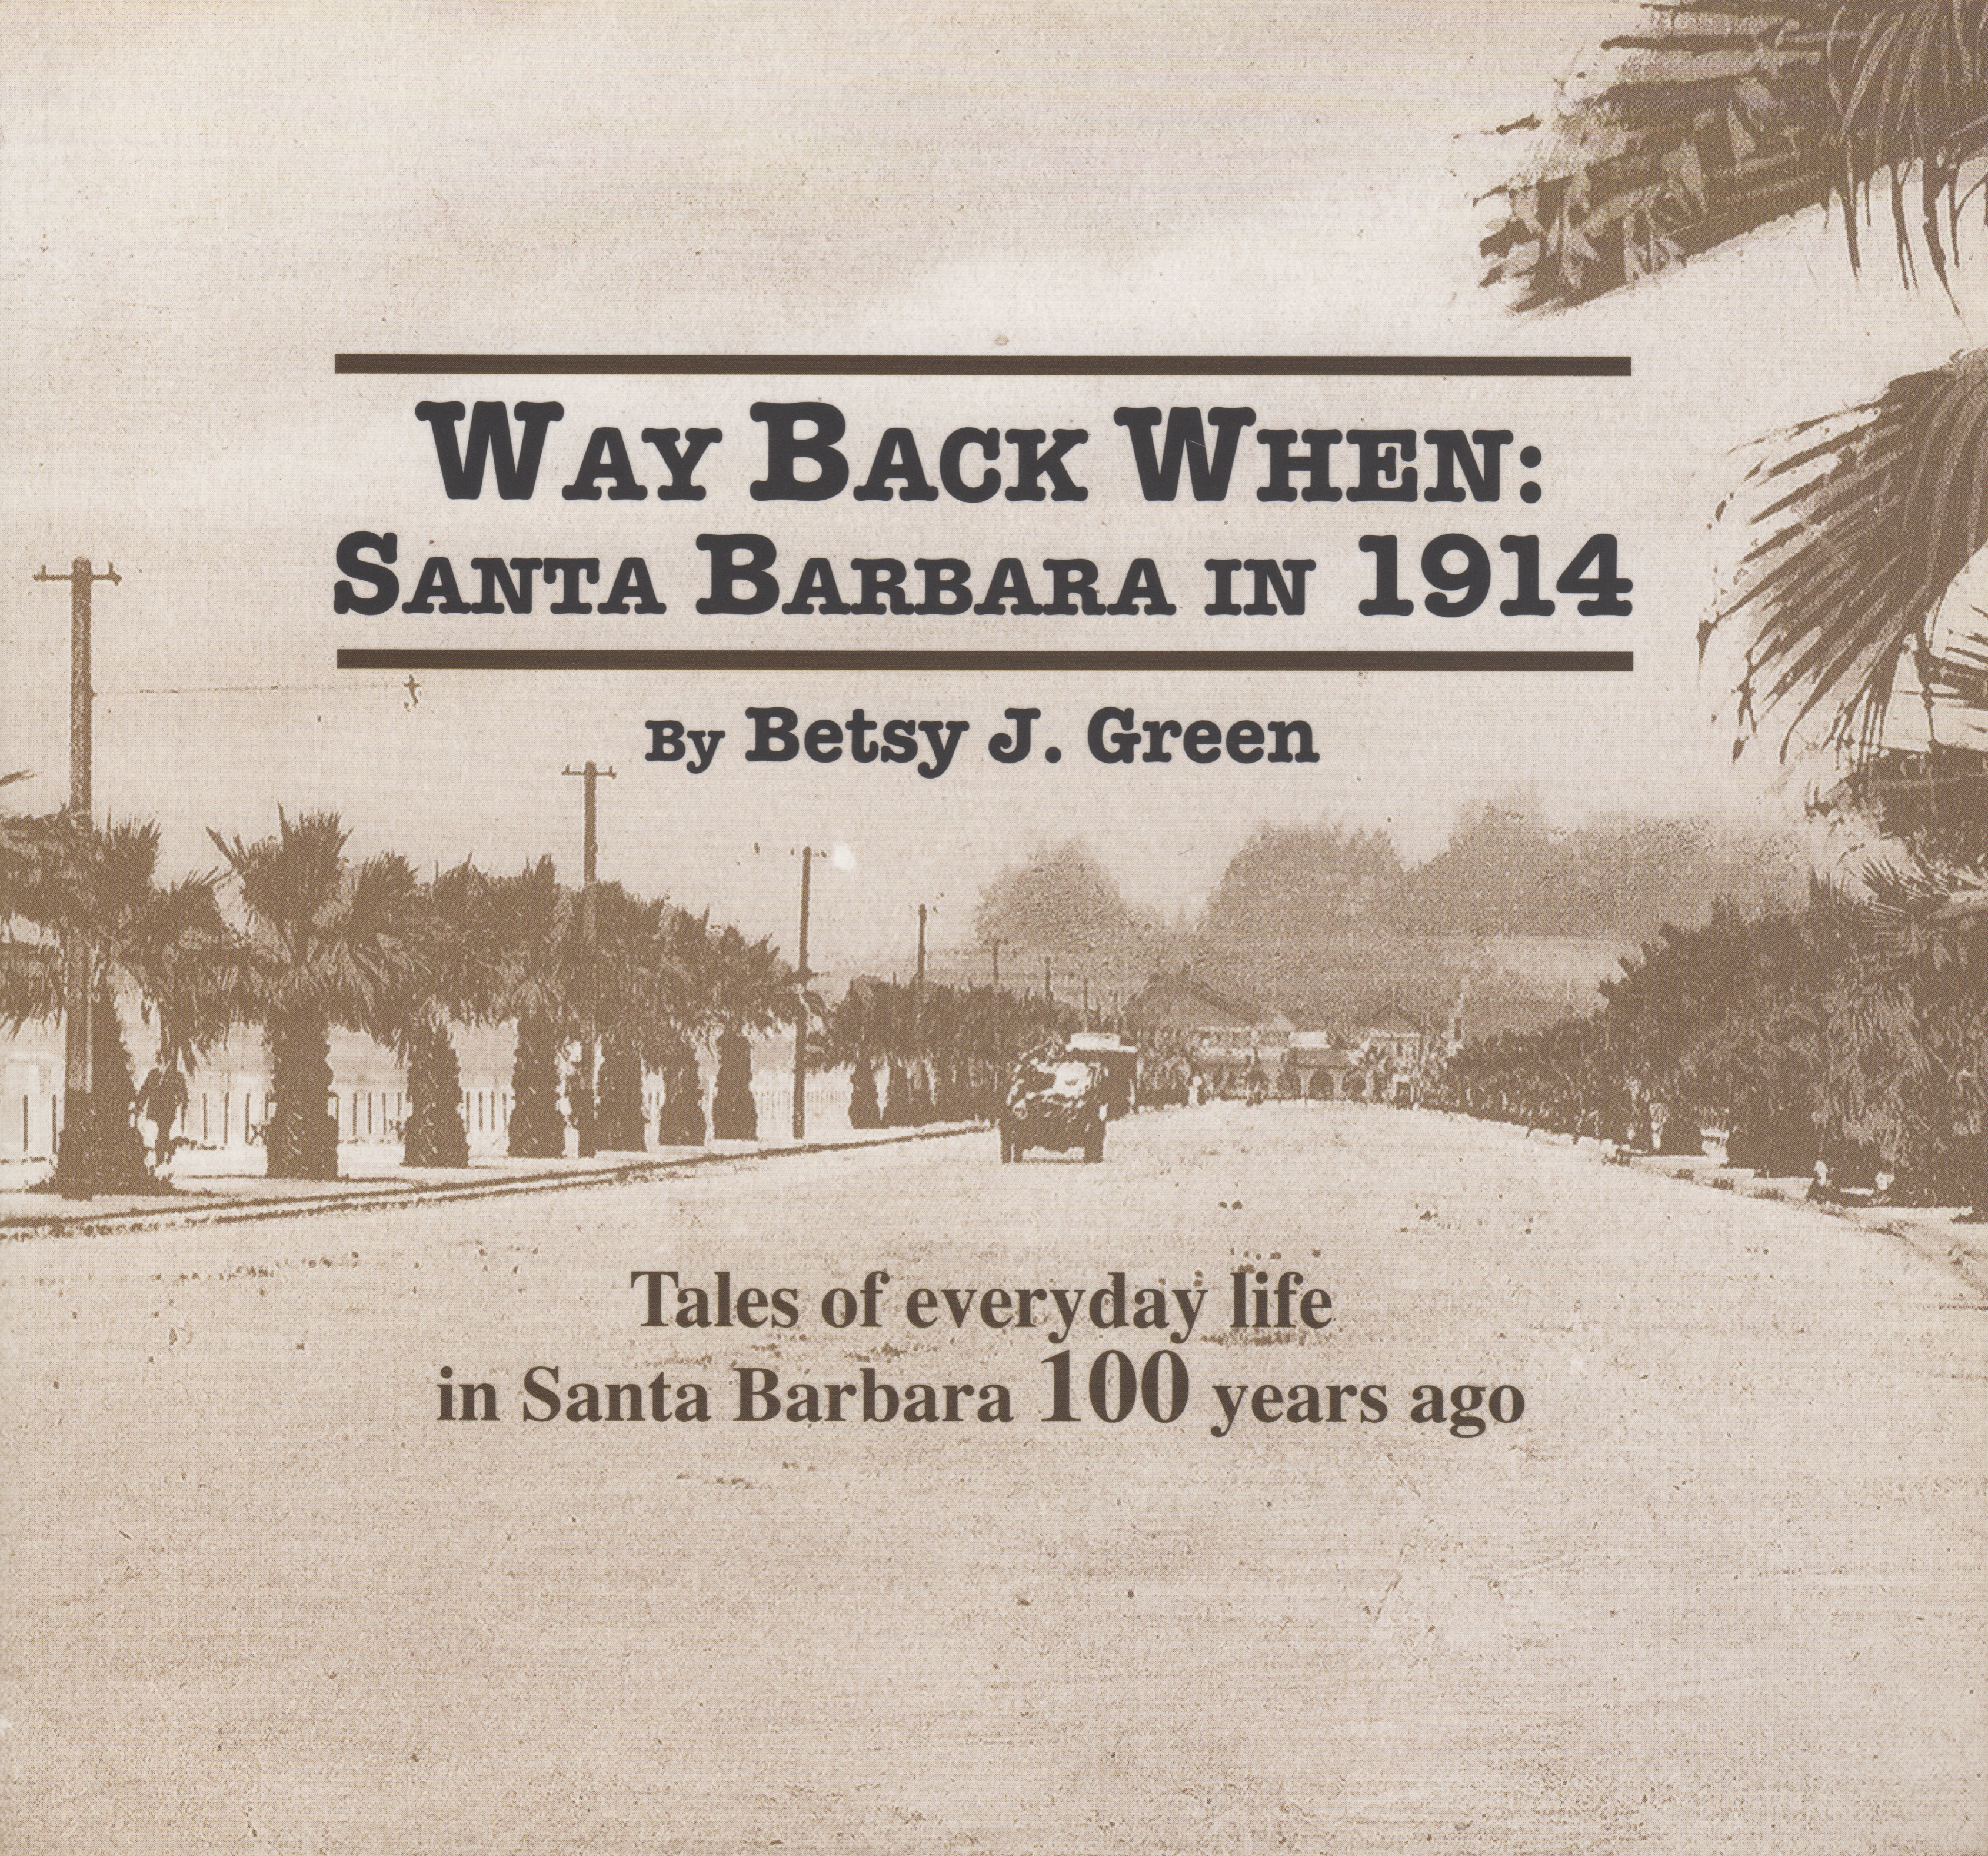 Way Back When: Santa Barbara in 1914, by Betsy J. Green, soft cover